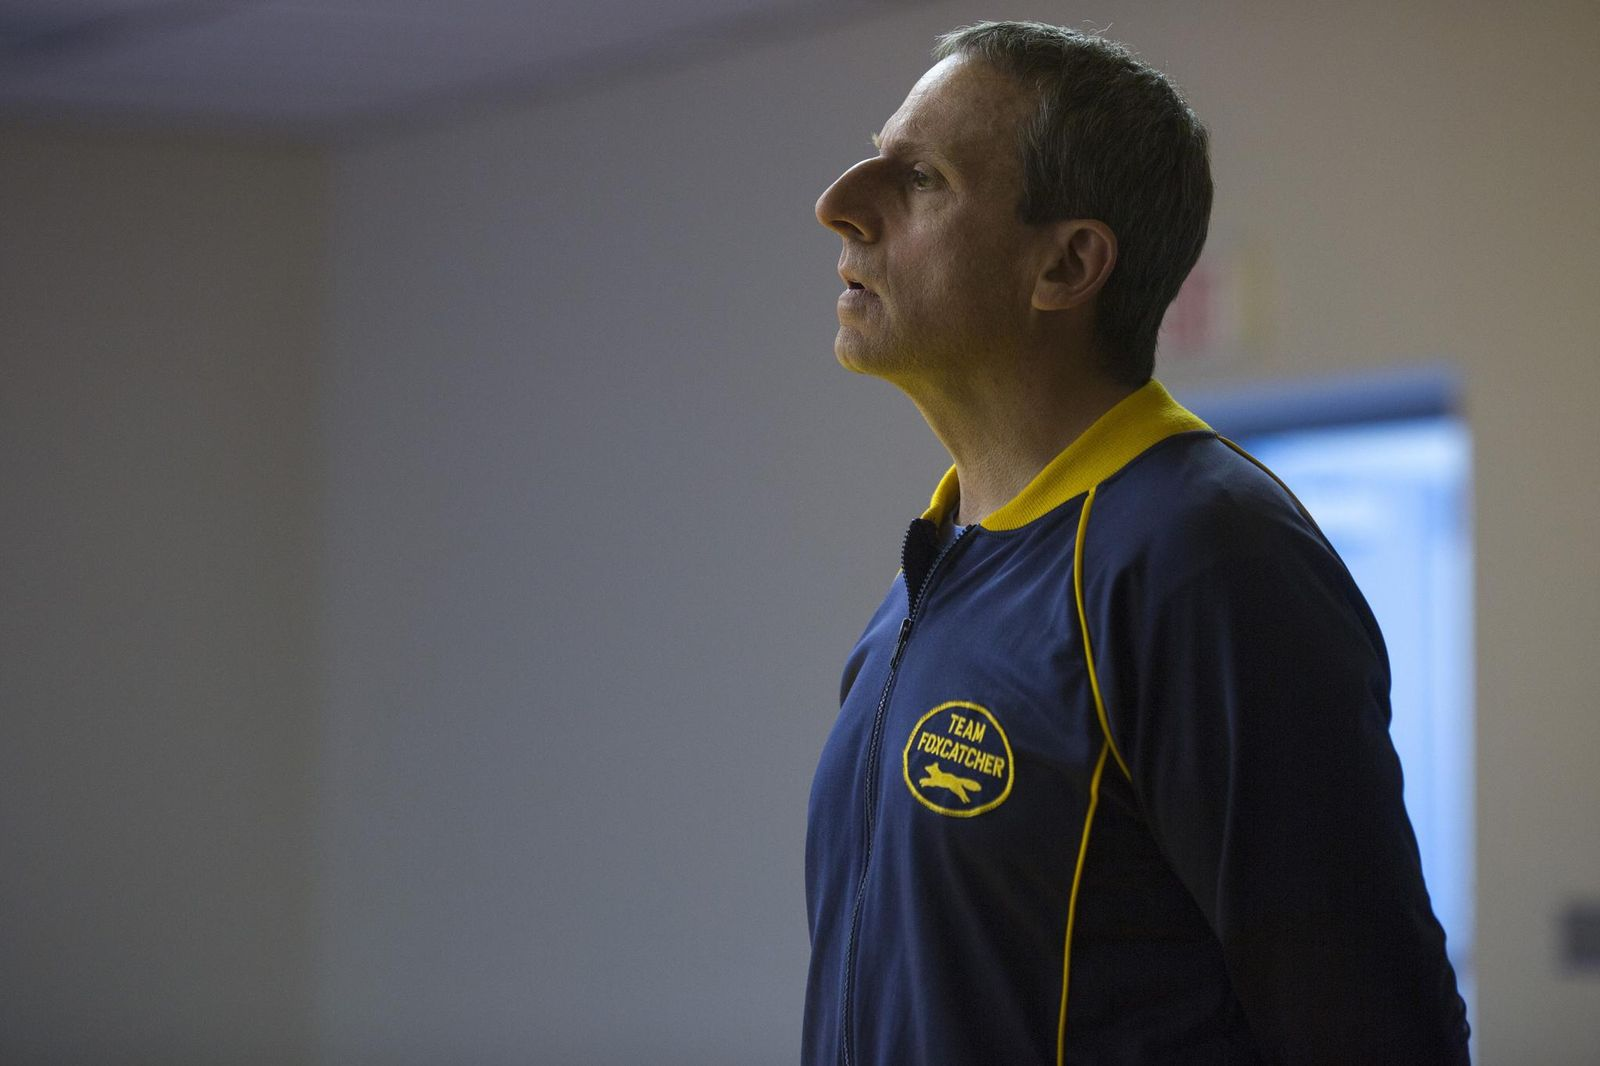 Film Foxcatcher (2014)